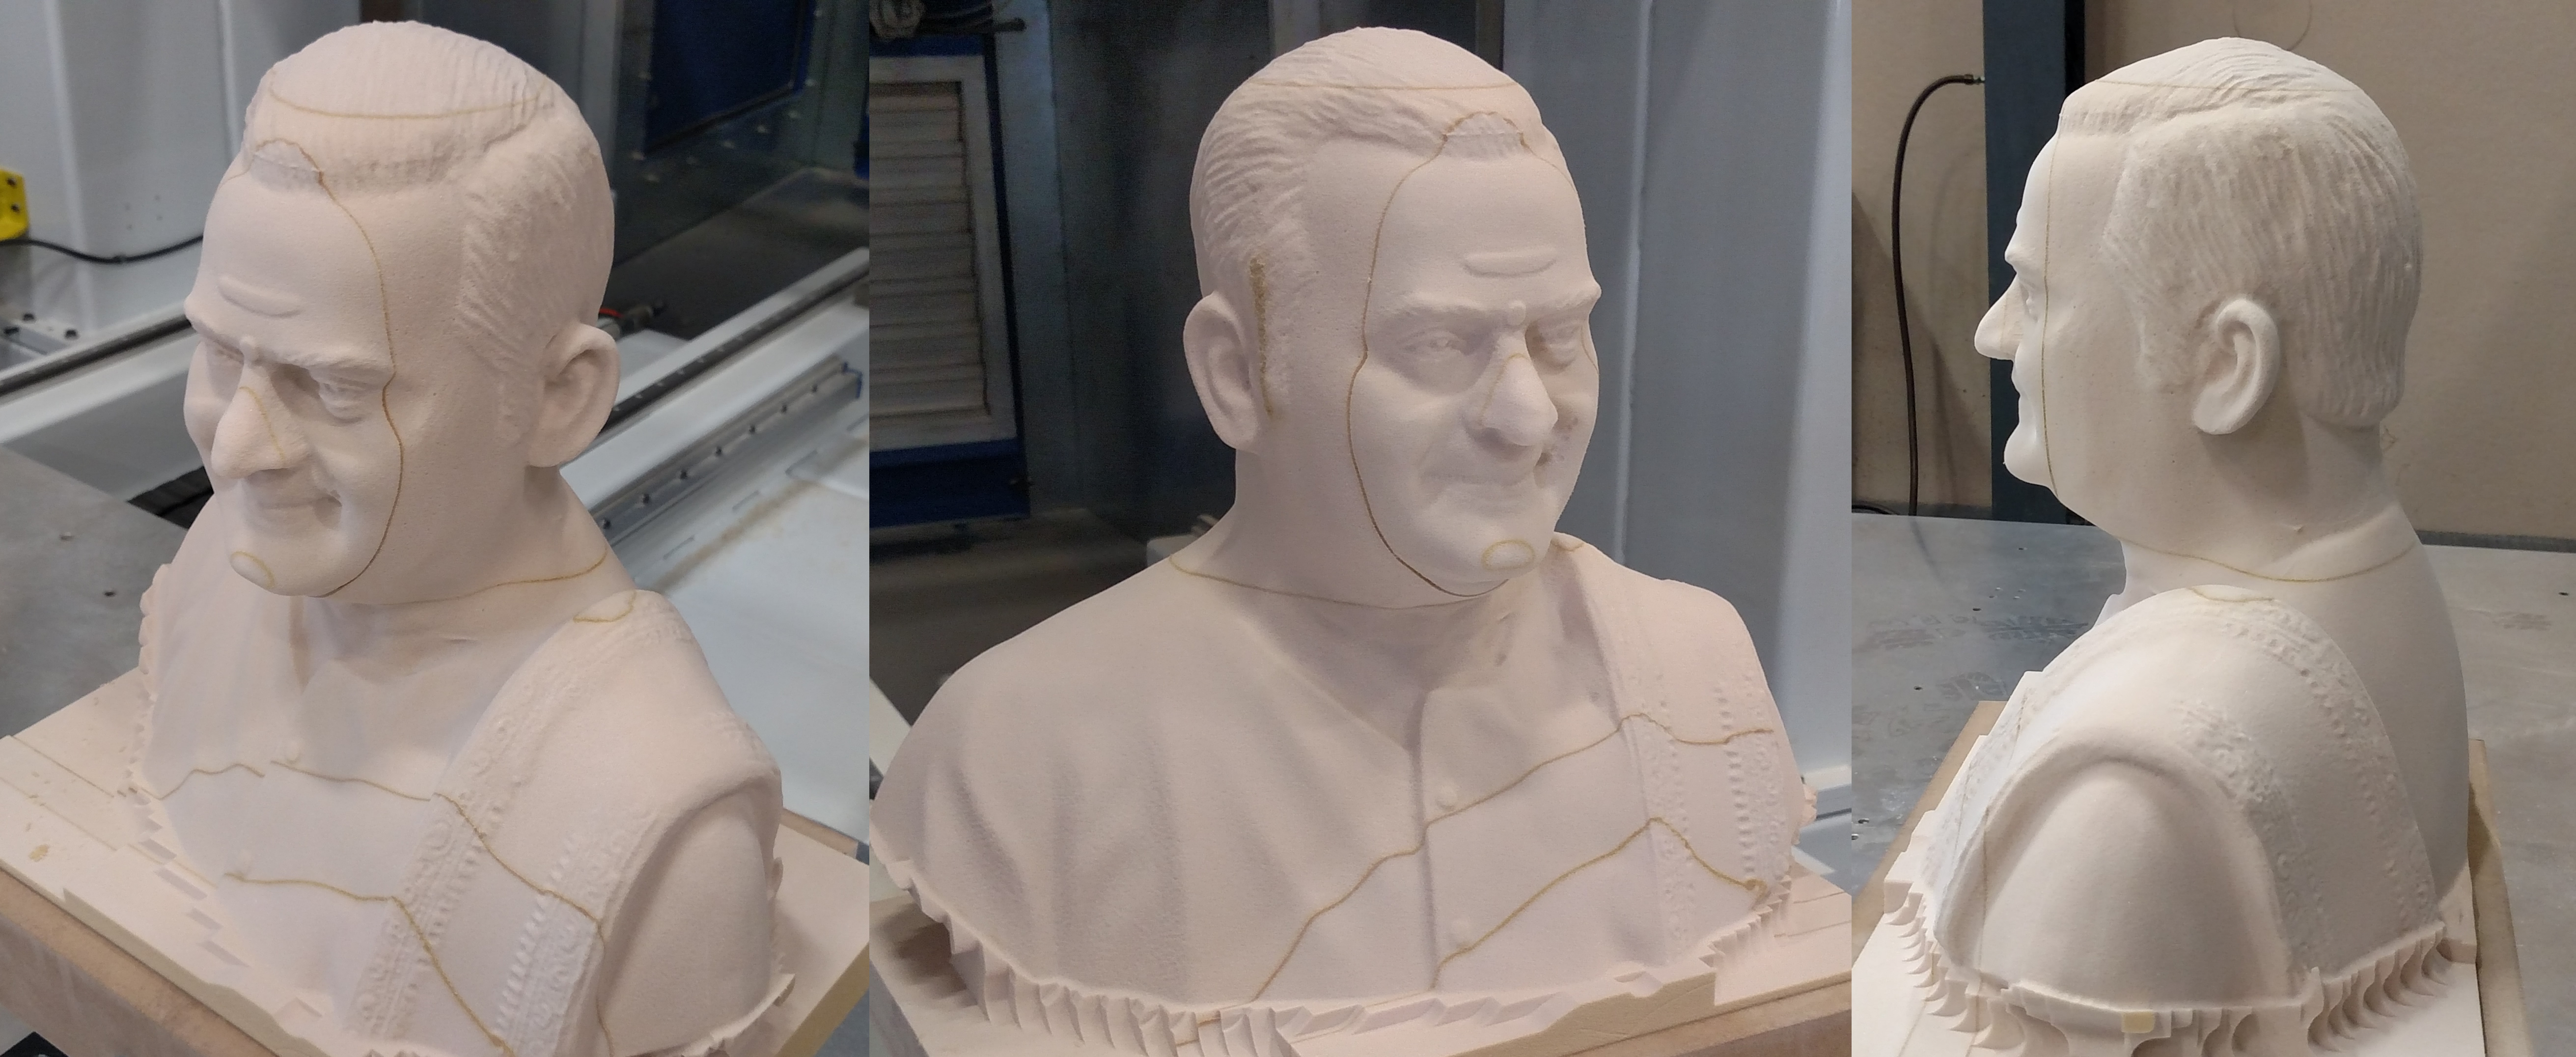 Bust machined on Thermwood 5 Axis Model 90